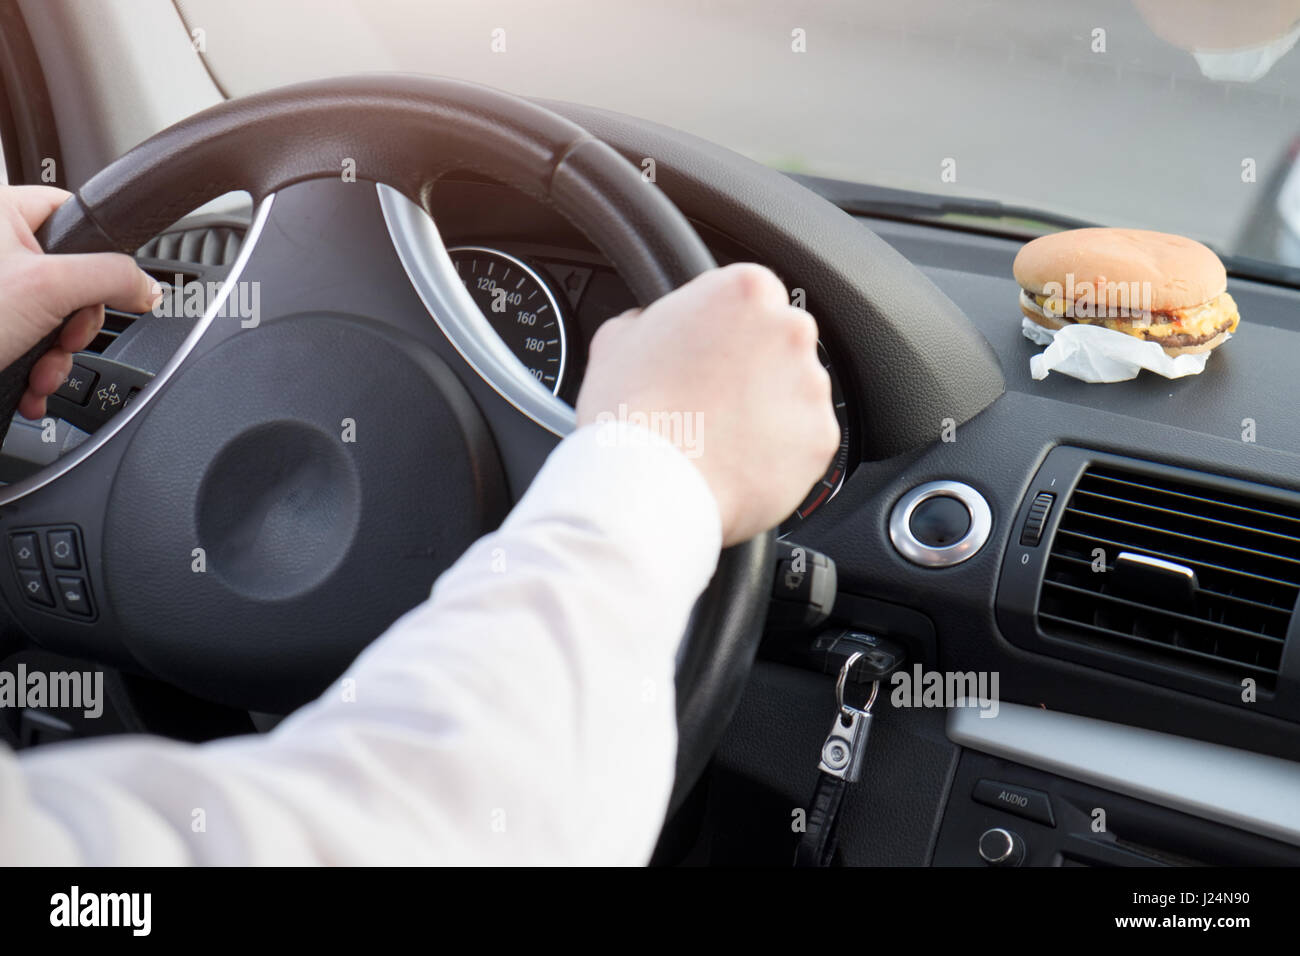 Man eating junk food and driving seated in his car - Stock Image